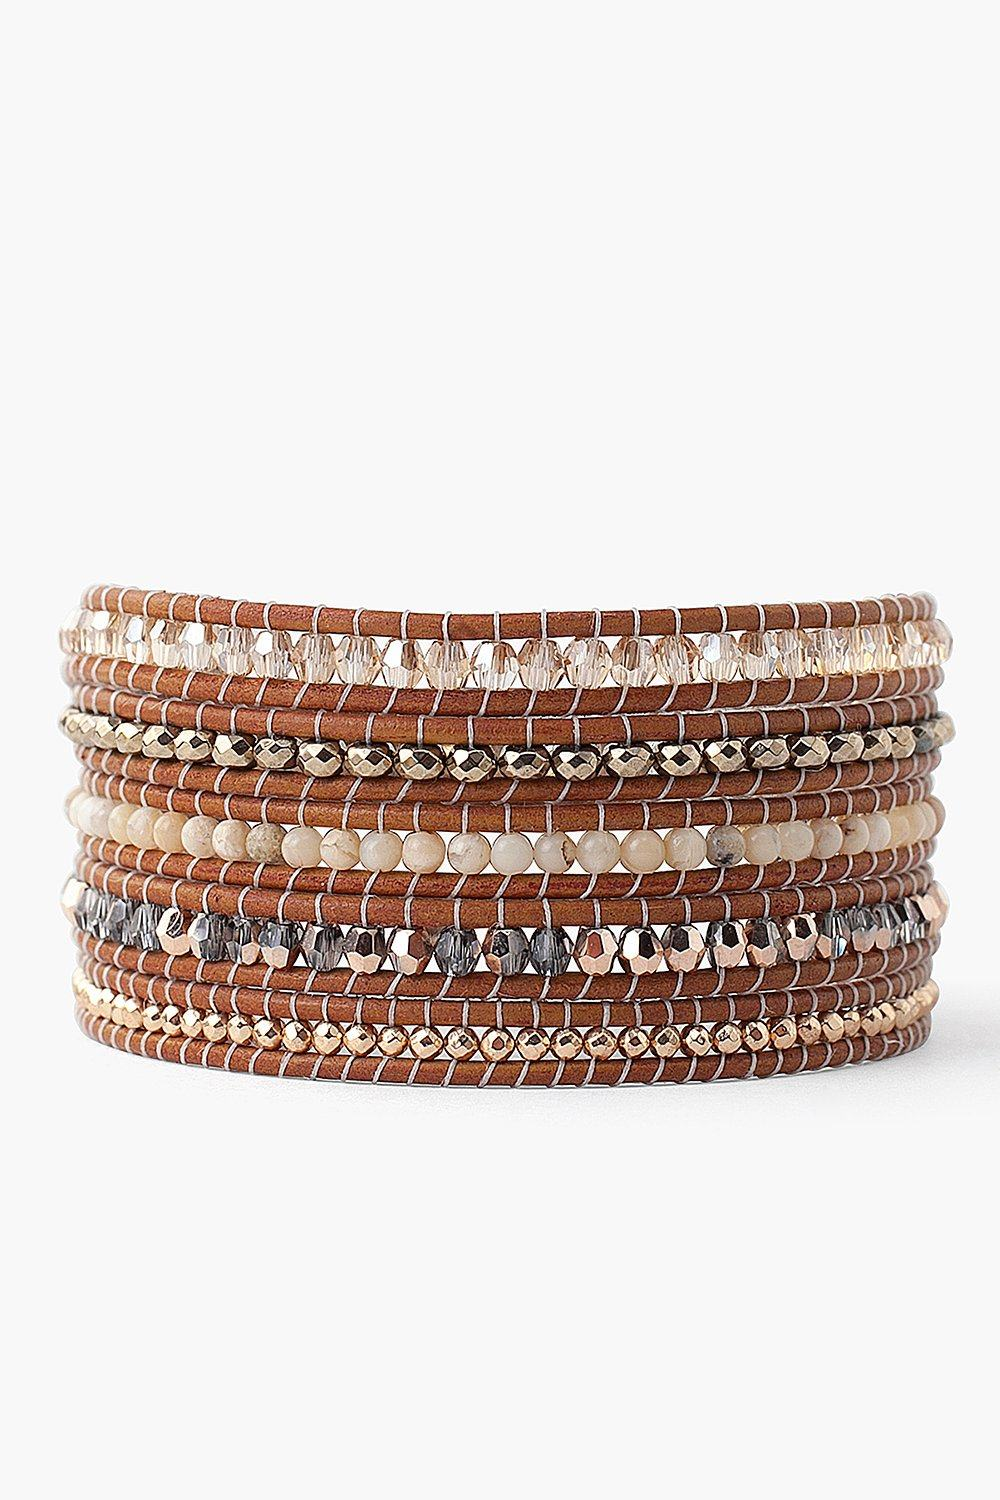 Golden Shadow Mix Wrap Bracelet on Henna Leather